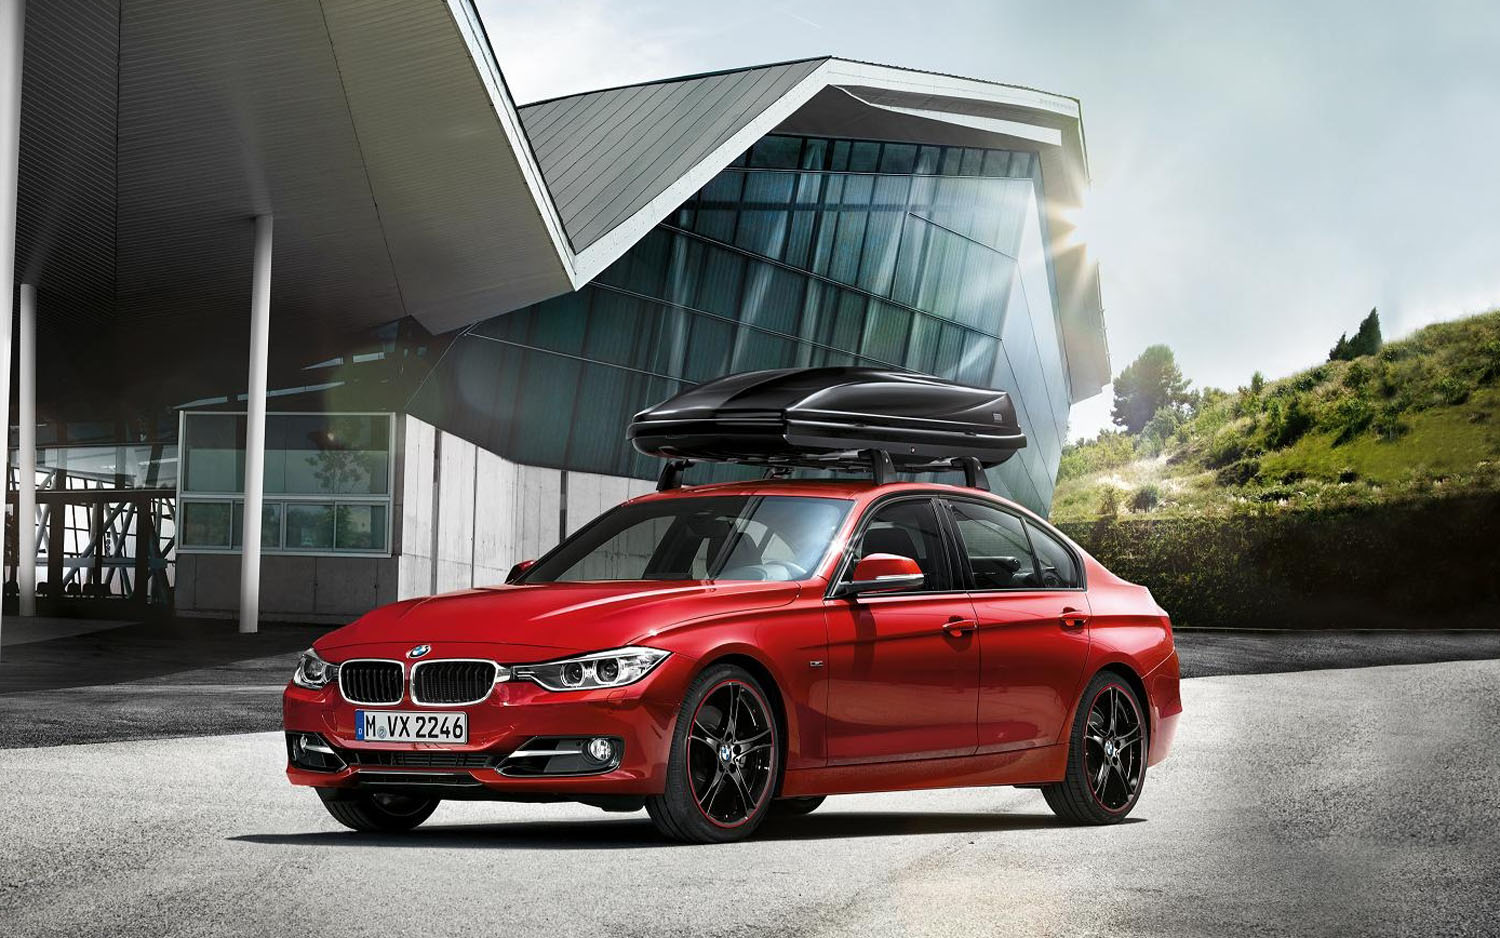 Bmw To Feature 3 Series With M Performance Parts At Geneva Show